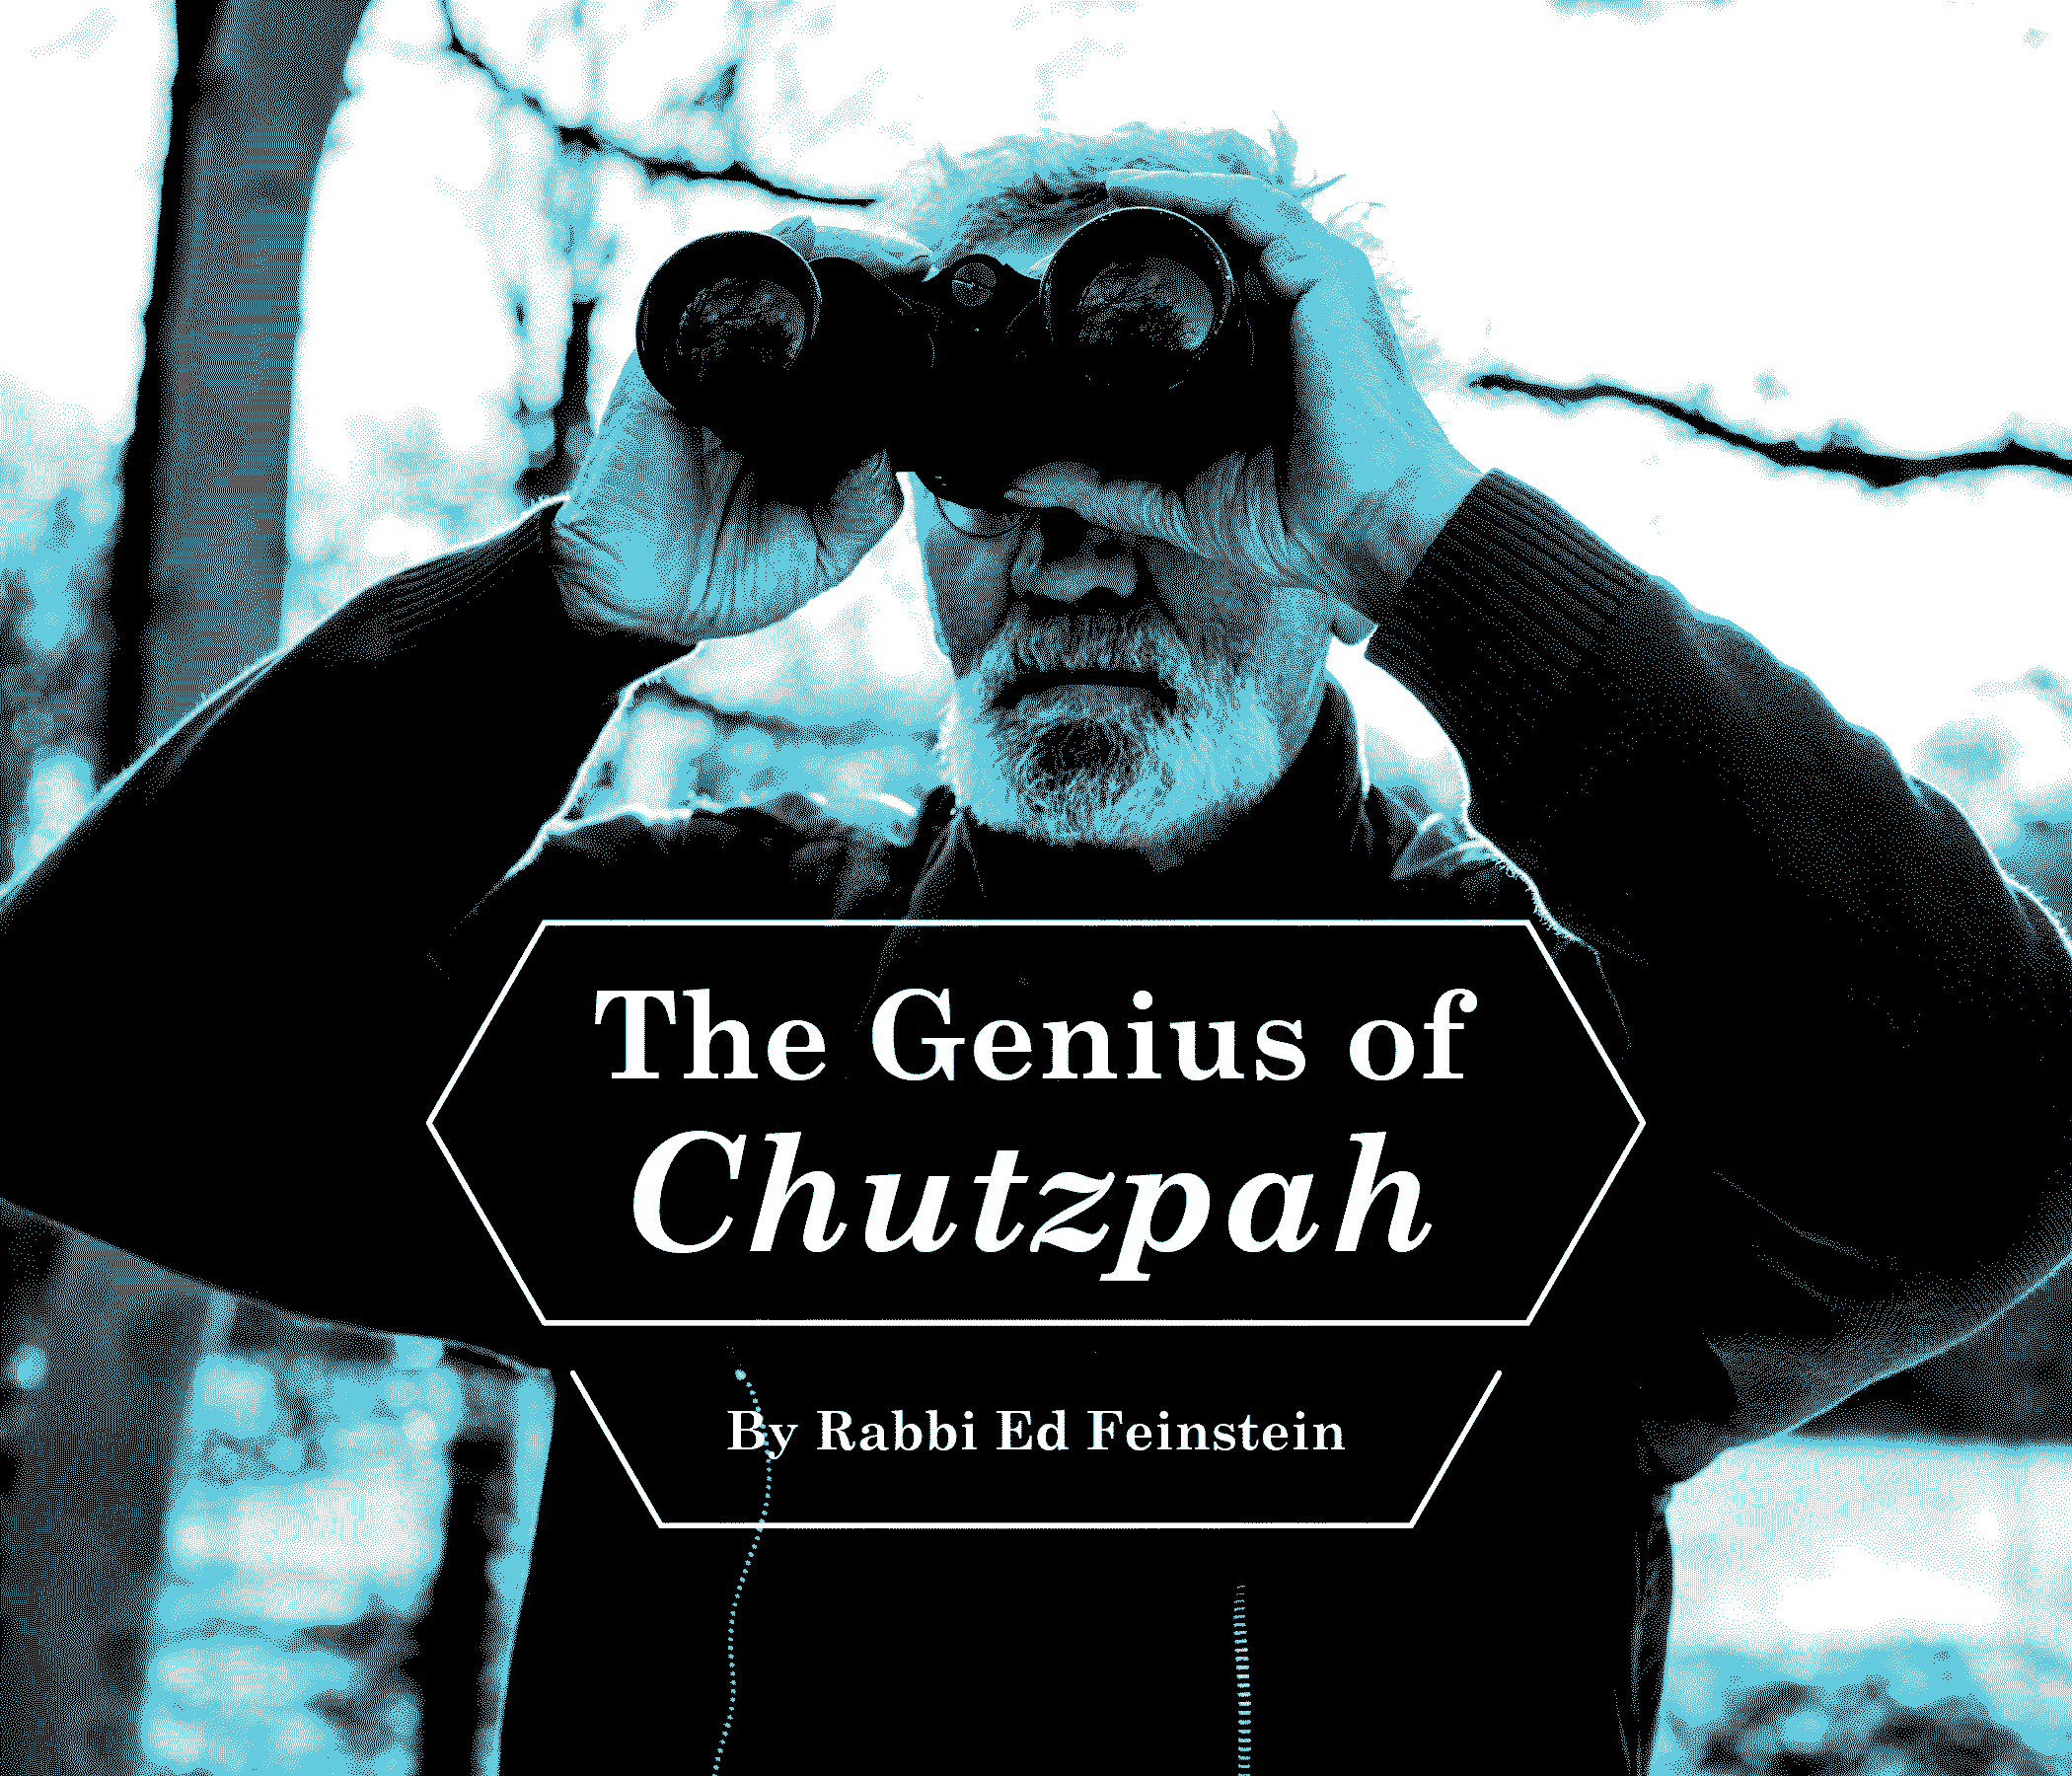 The Genius of Chutzpah - 7 Days of Genius - Medium